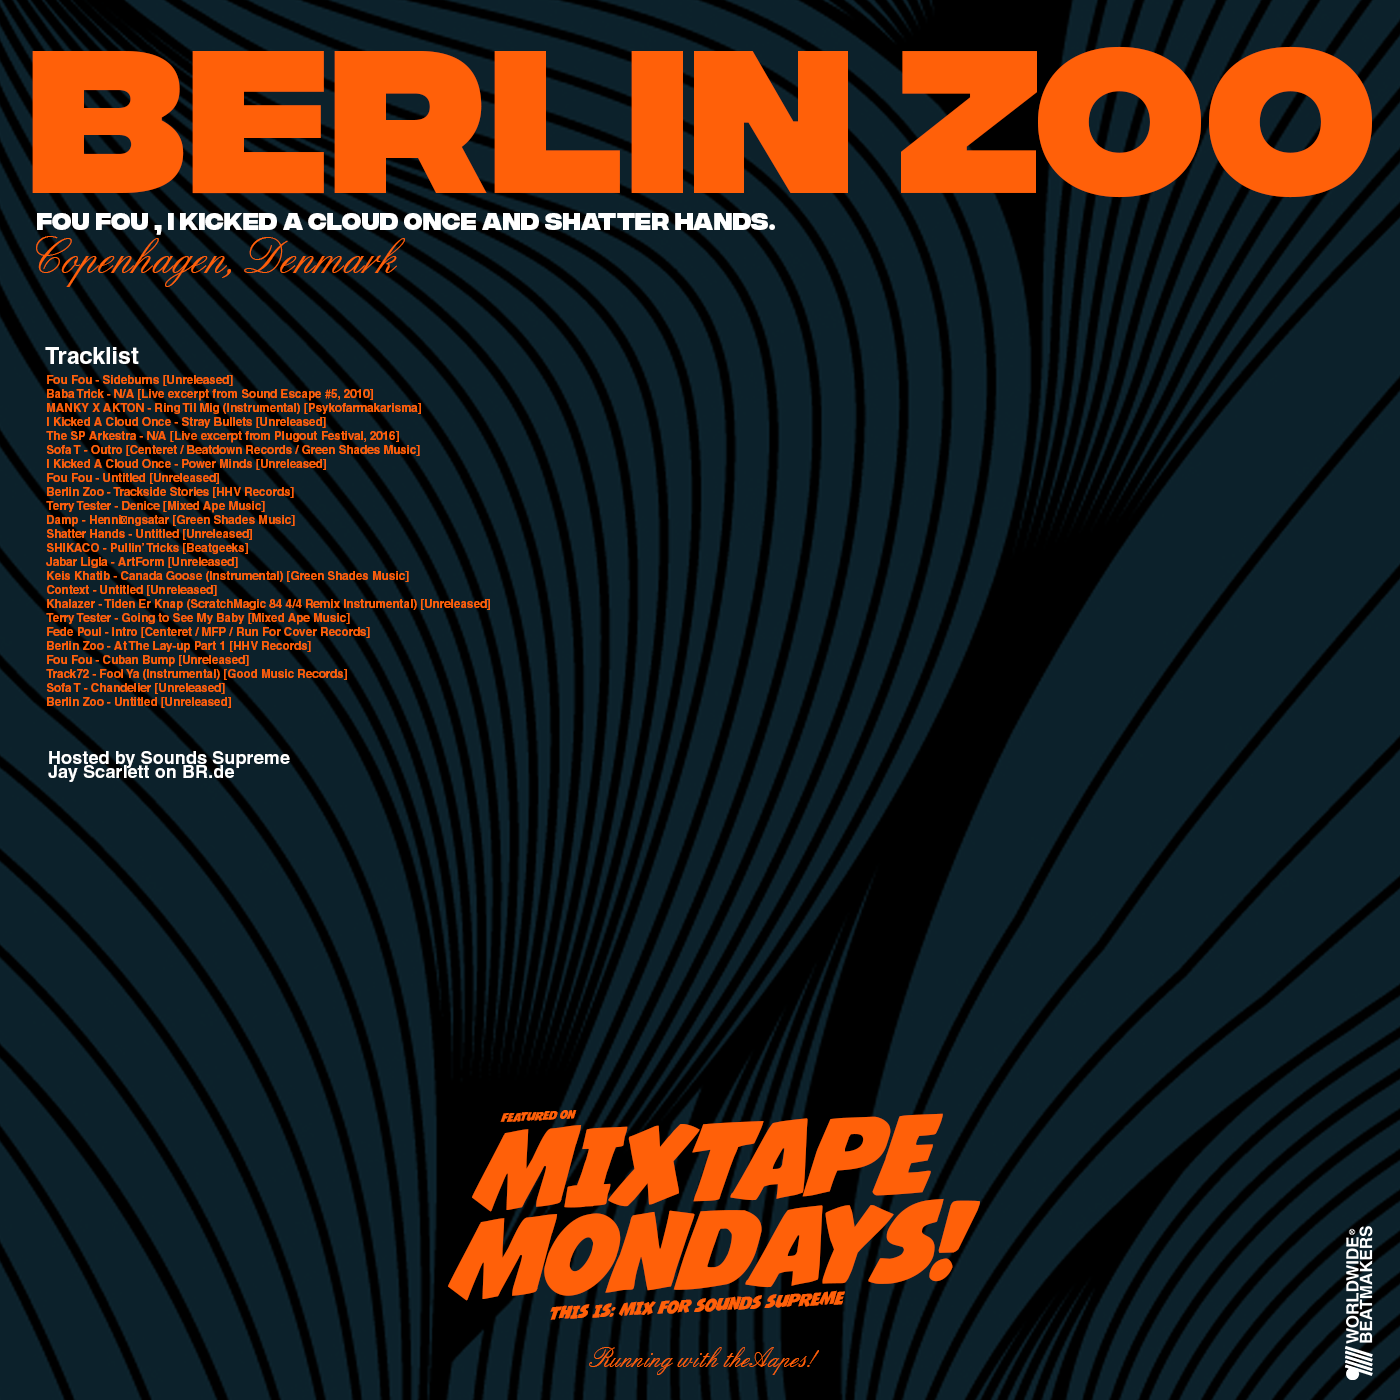 Mixtape Mondays: Berlin Zoo (Mix For Sounds Supreme)